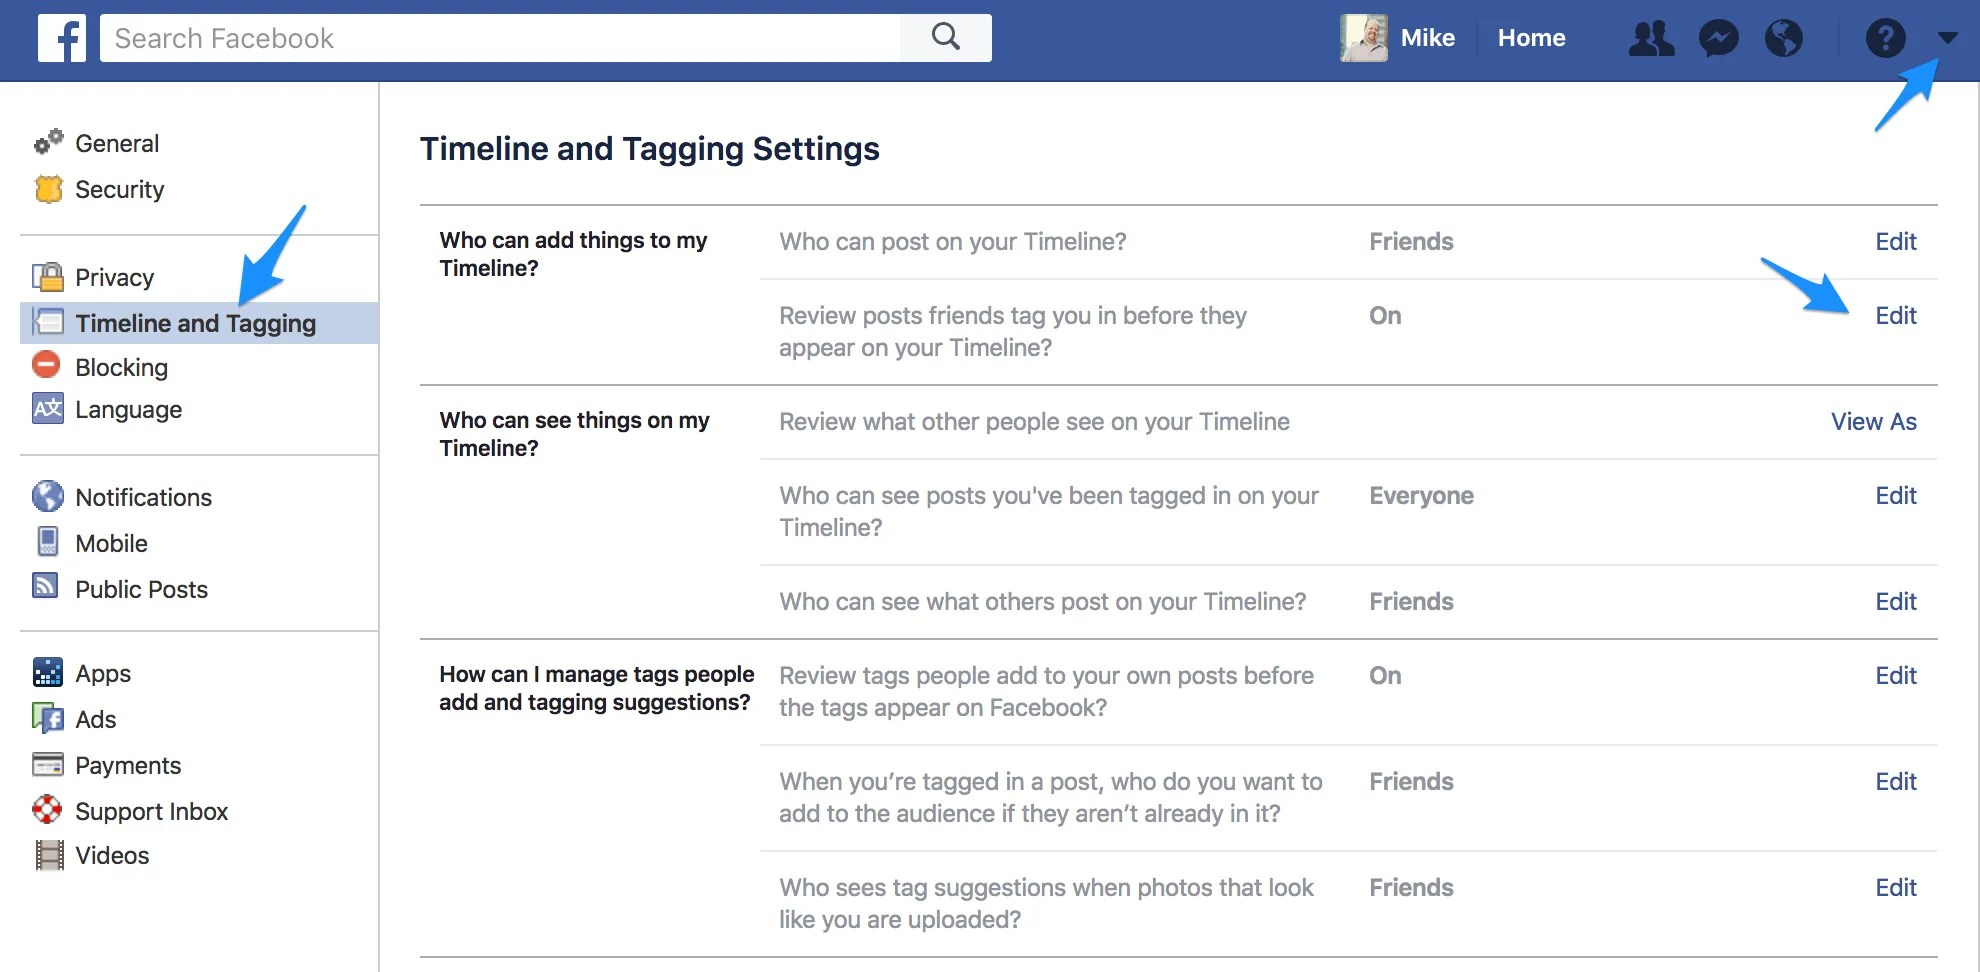 Use the Timeline and Tagging Settings within Facebook to manage tagging.